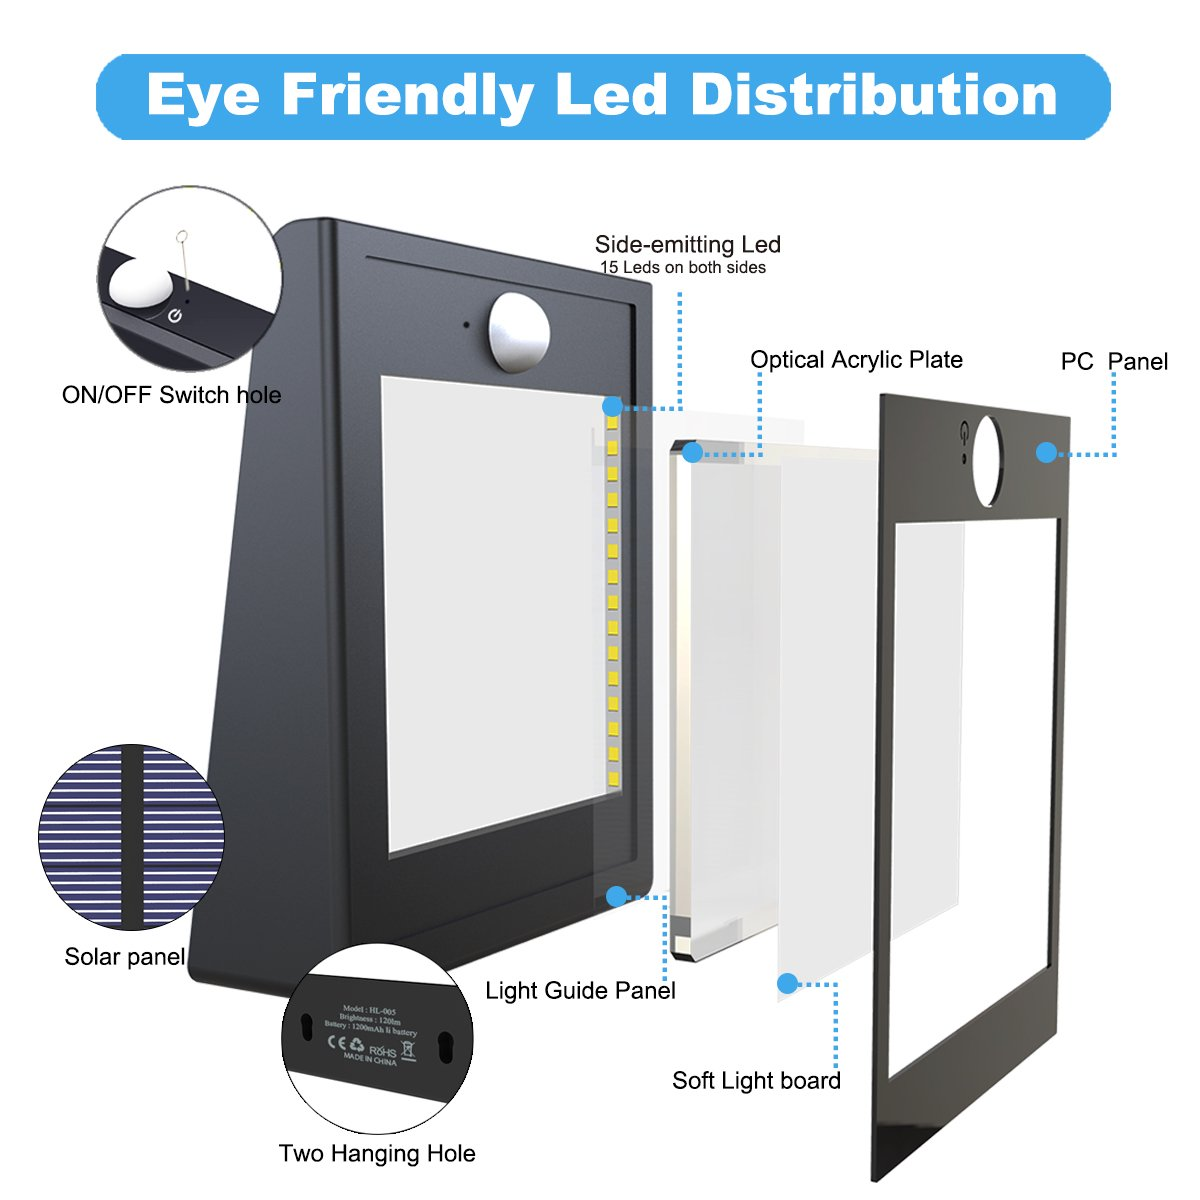 30 Led Solar Lights Outdoor Super Bright Iextreme Motion 12 Volt Light Wiring Diagram Sensor Wireless Waterproof Security With 120 Degree Wide Angle Illumination